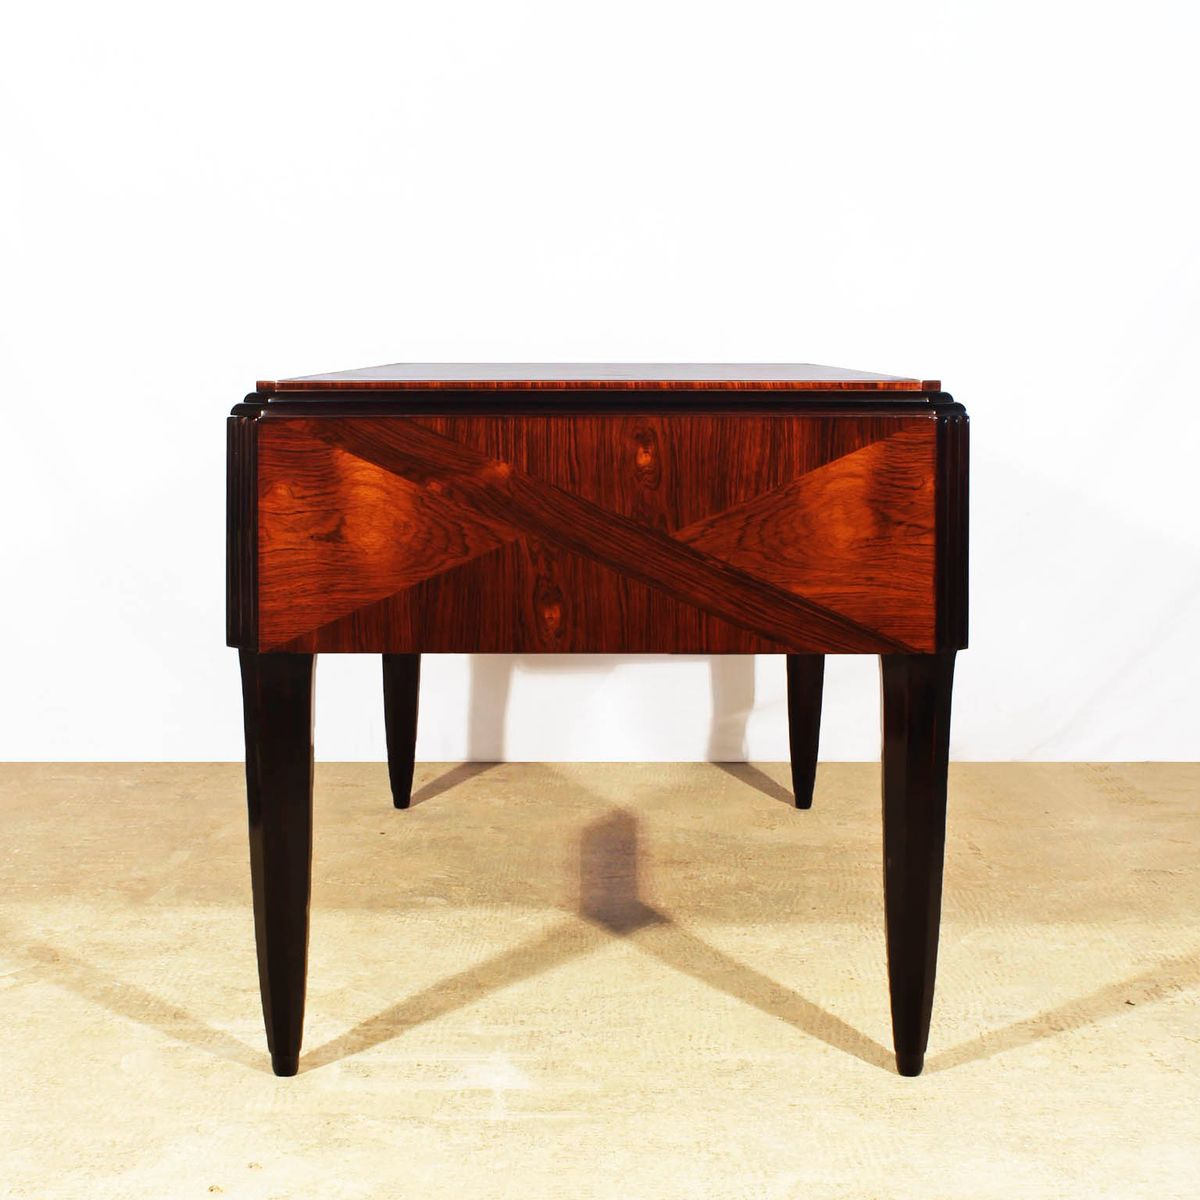 Art Deco French Double Sided Desk 1925 for sale at Pamono